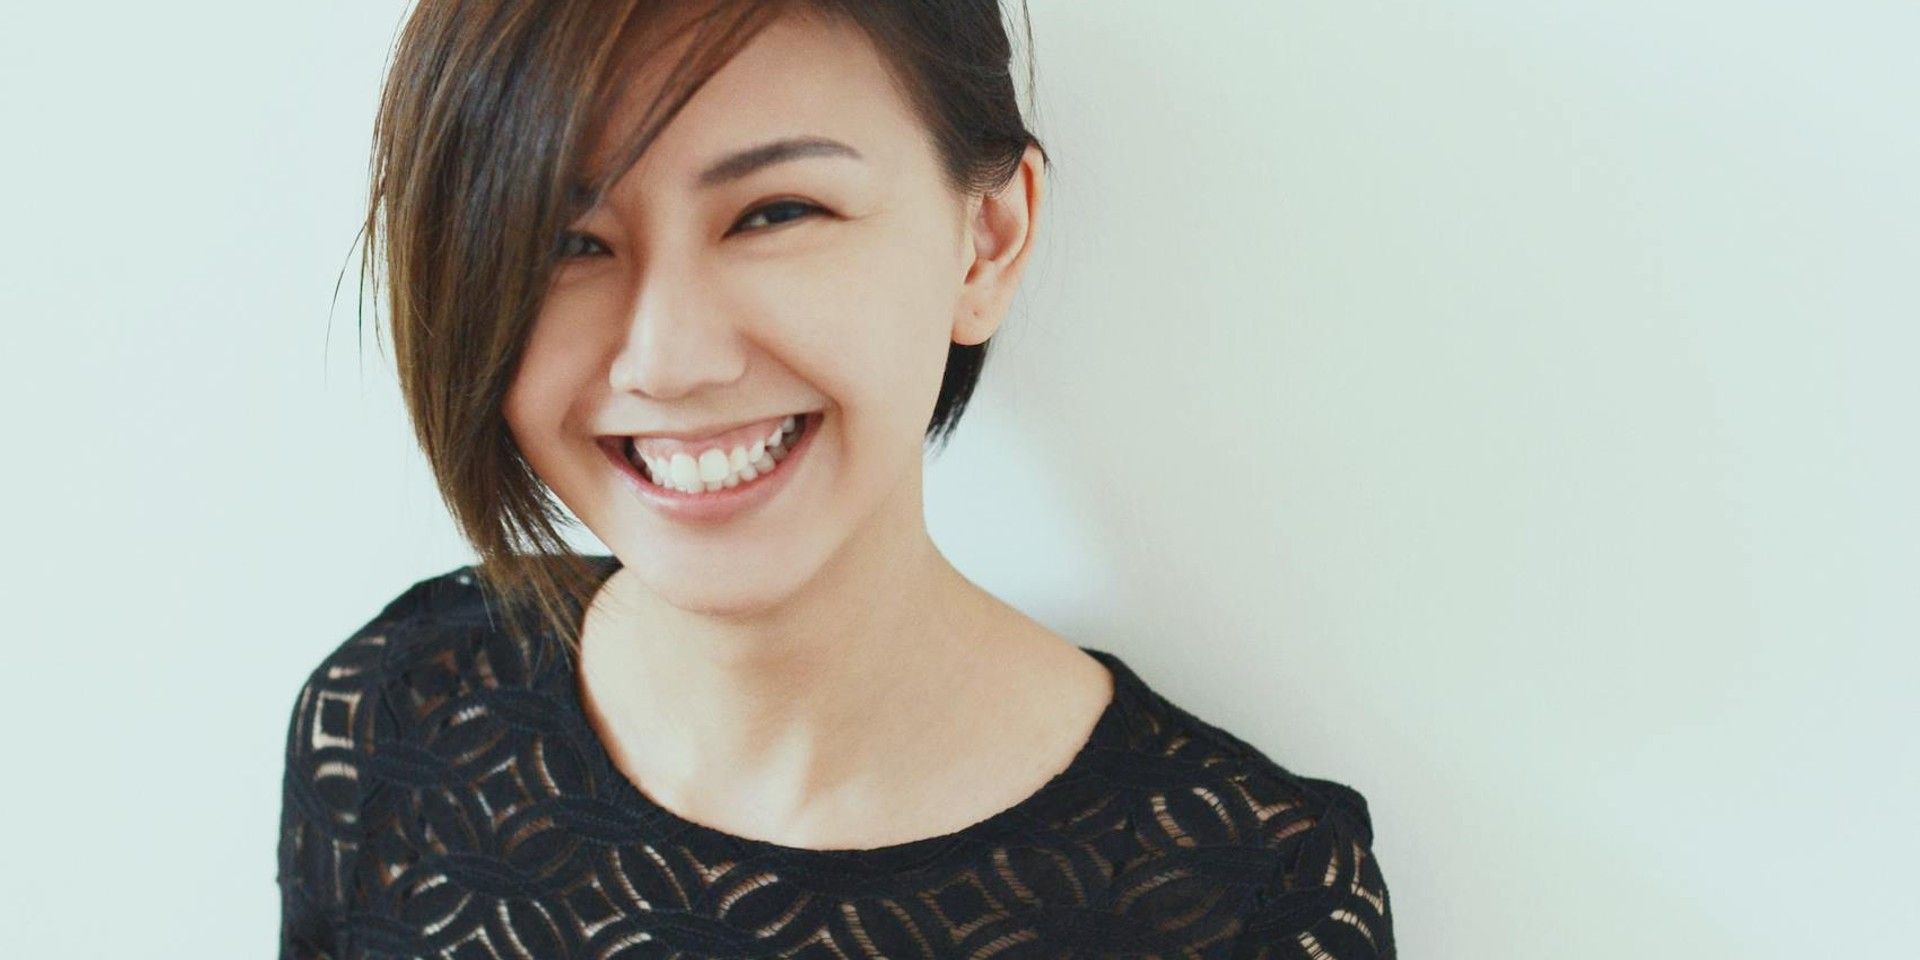 No, Stefanie Sun is not quitting music to go into financial tech